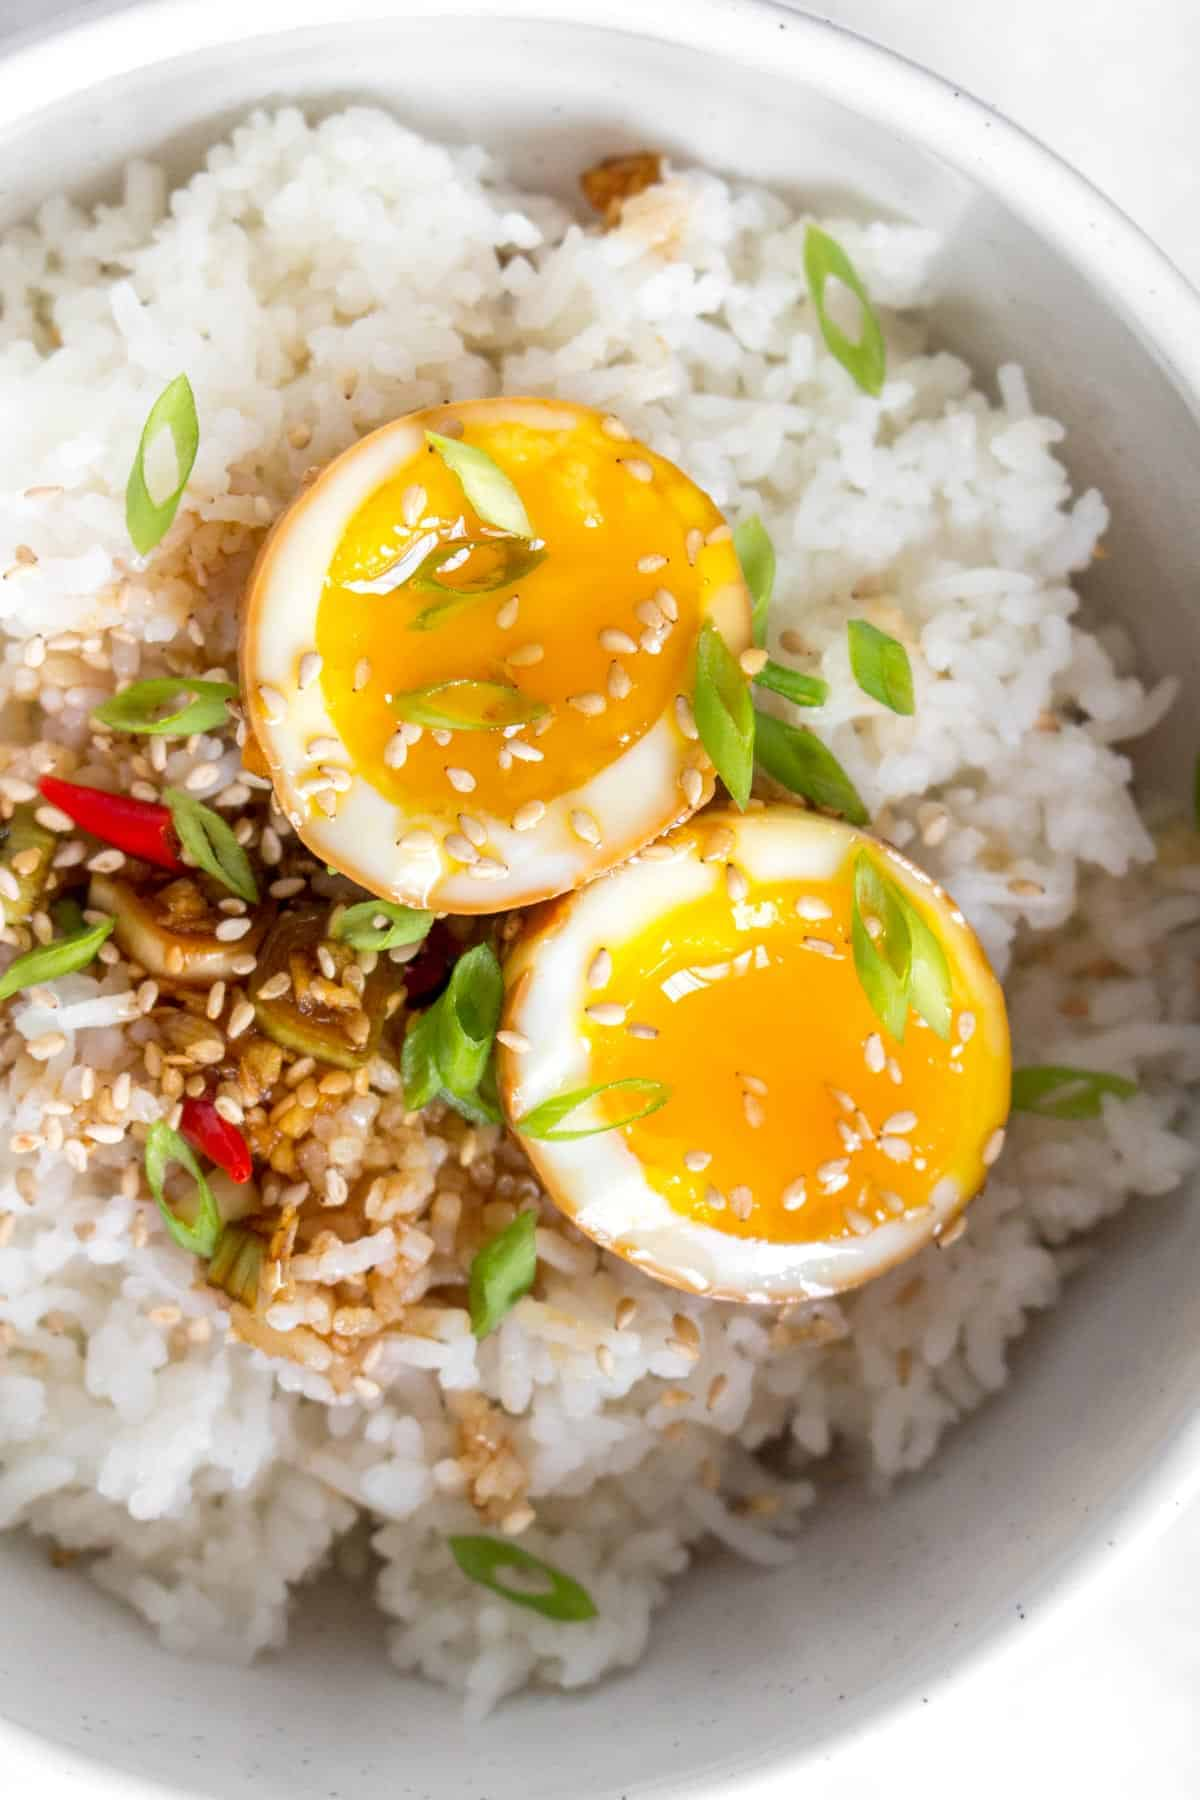 Close up of a Korean marinaded egg, cut in half, in a bowl of rice.